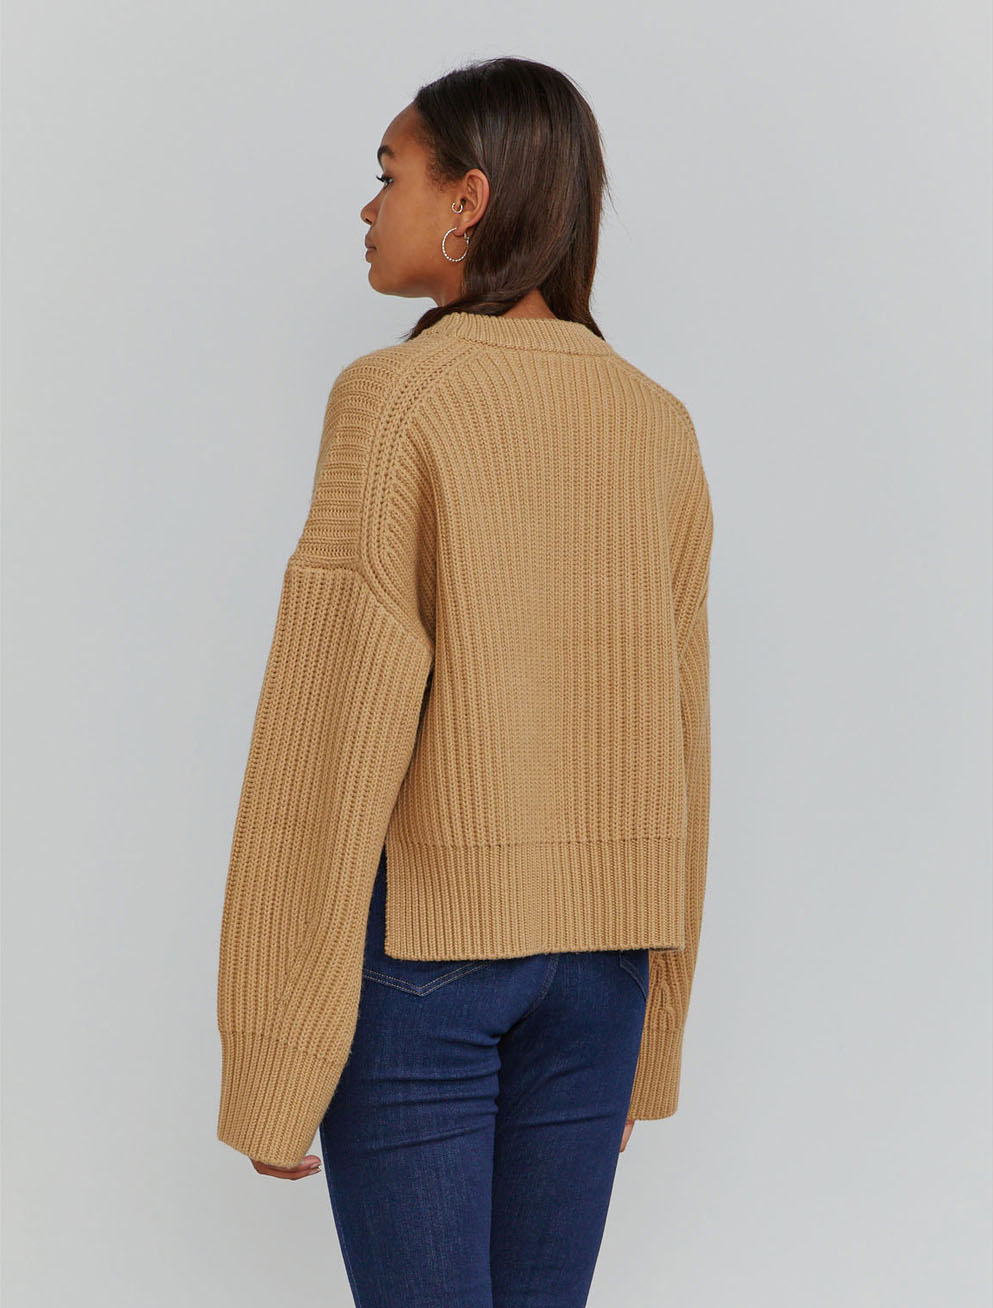 Organic merino fisherman's rib crew neck sweater